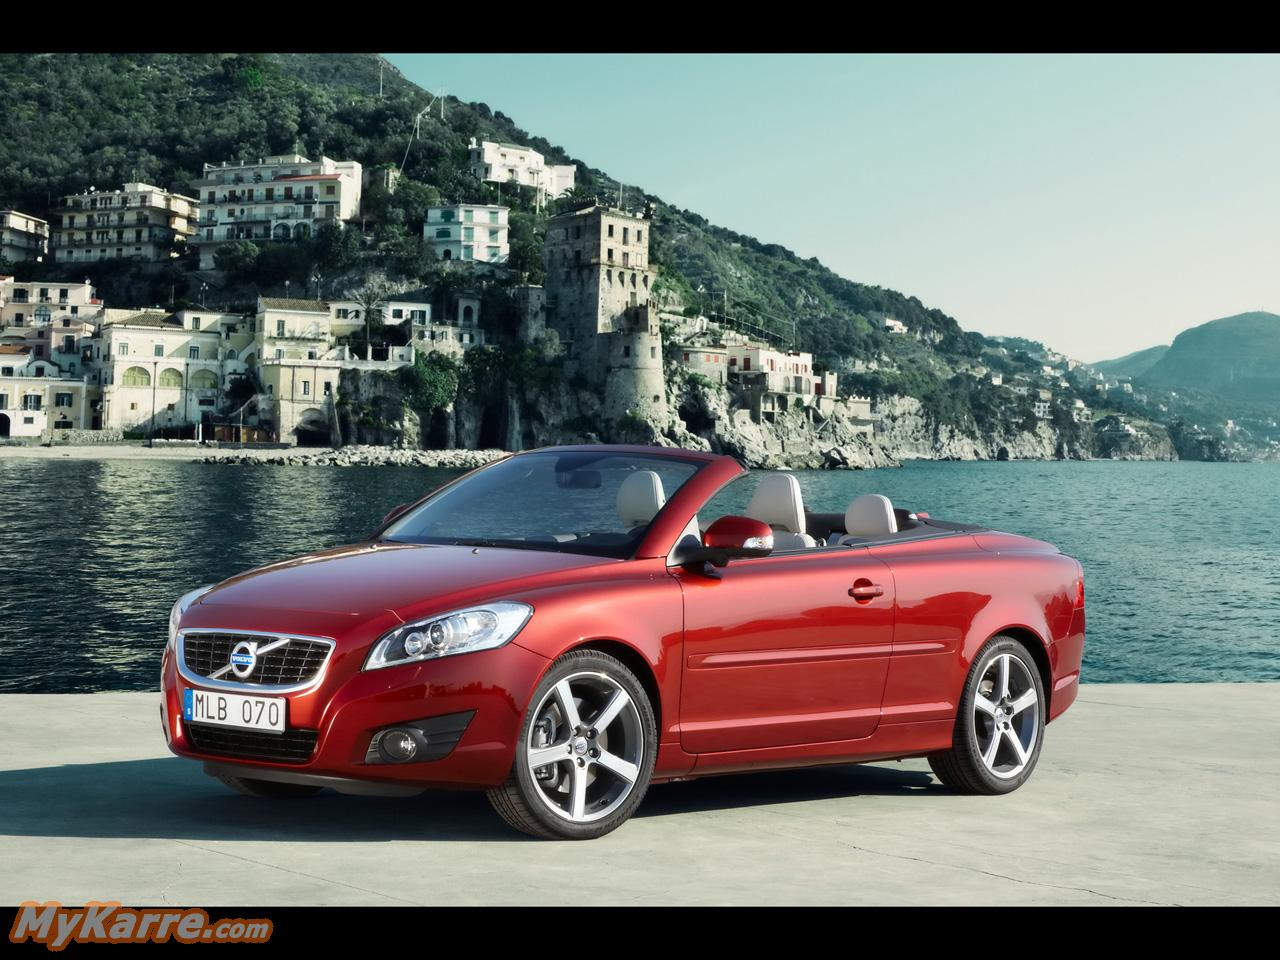 volvo c70 cabrio image 10. Black Bedroom Furniture Sets. Home Design Ideas